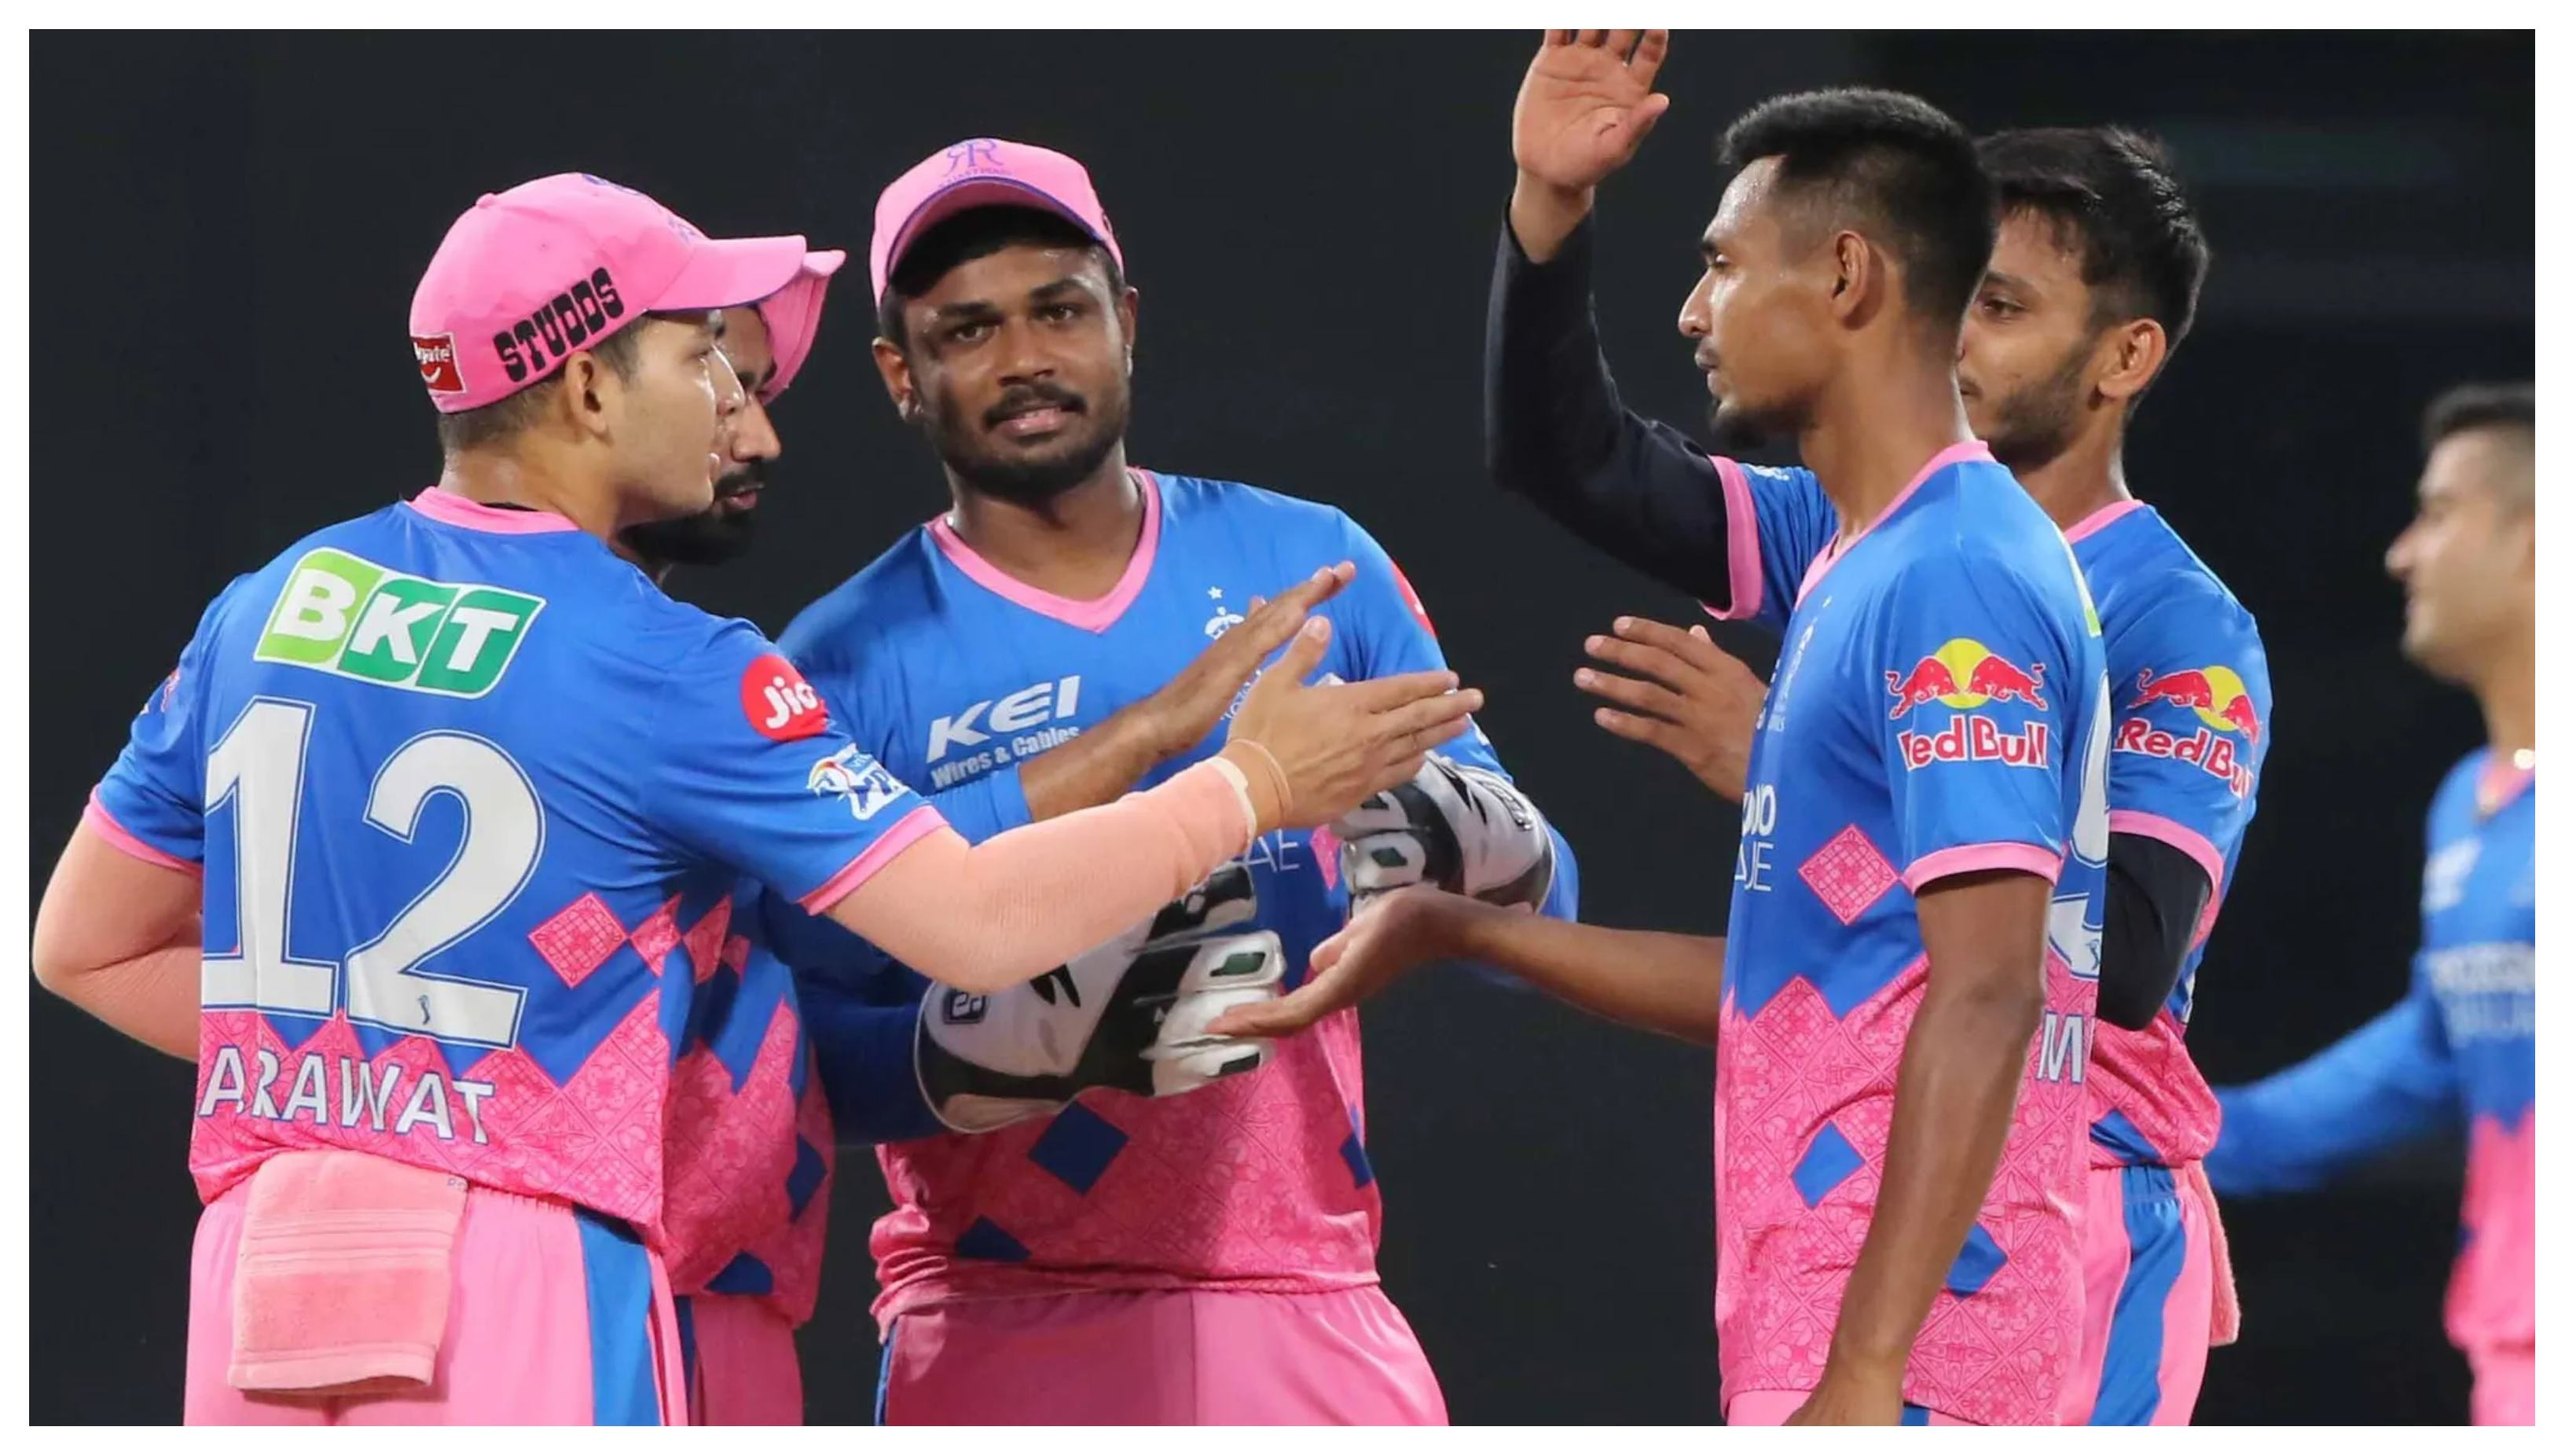 Rajasthan Royals outplayed Sunrisers Hyderabad in all departments | BCCI/IPL